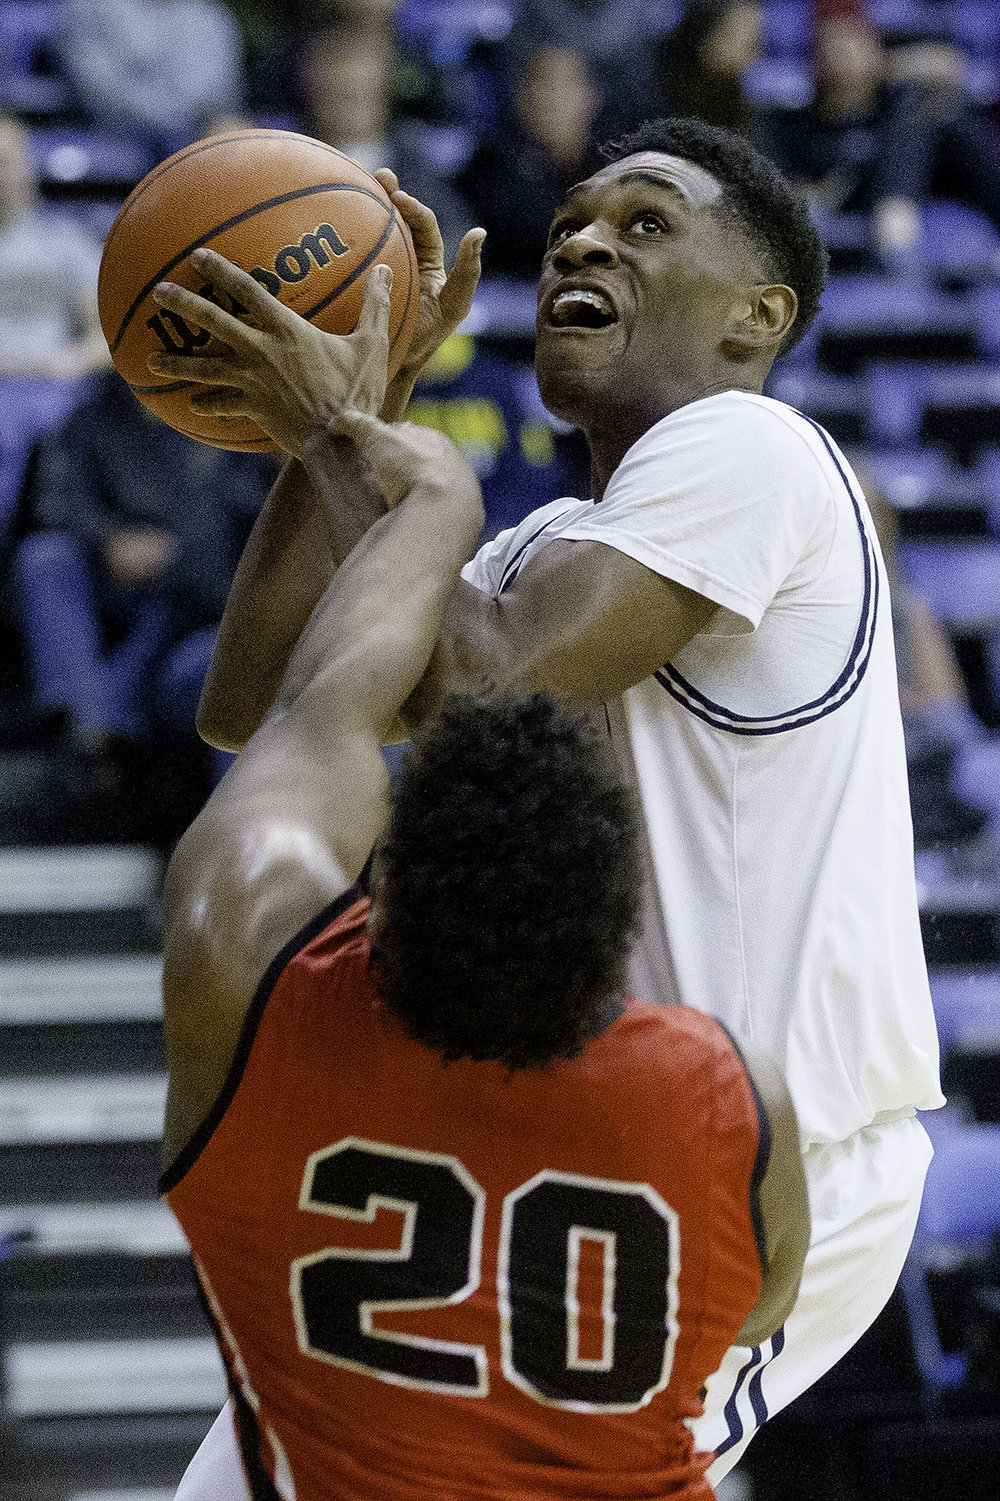 Southeast's Jayden Hayes drives into Springfield's Caleb Small during the Boys City Tournament at the Bank of Springfield Center Thursday, Jan. 17, 2019.  [Ted Schurter/The State Journal-Register]